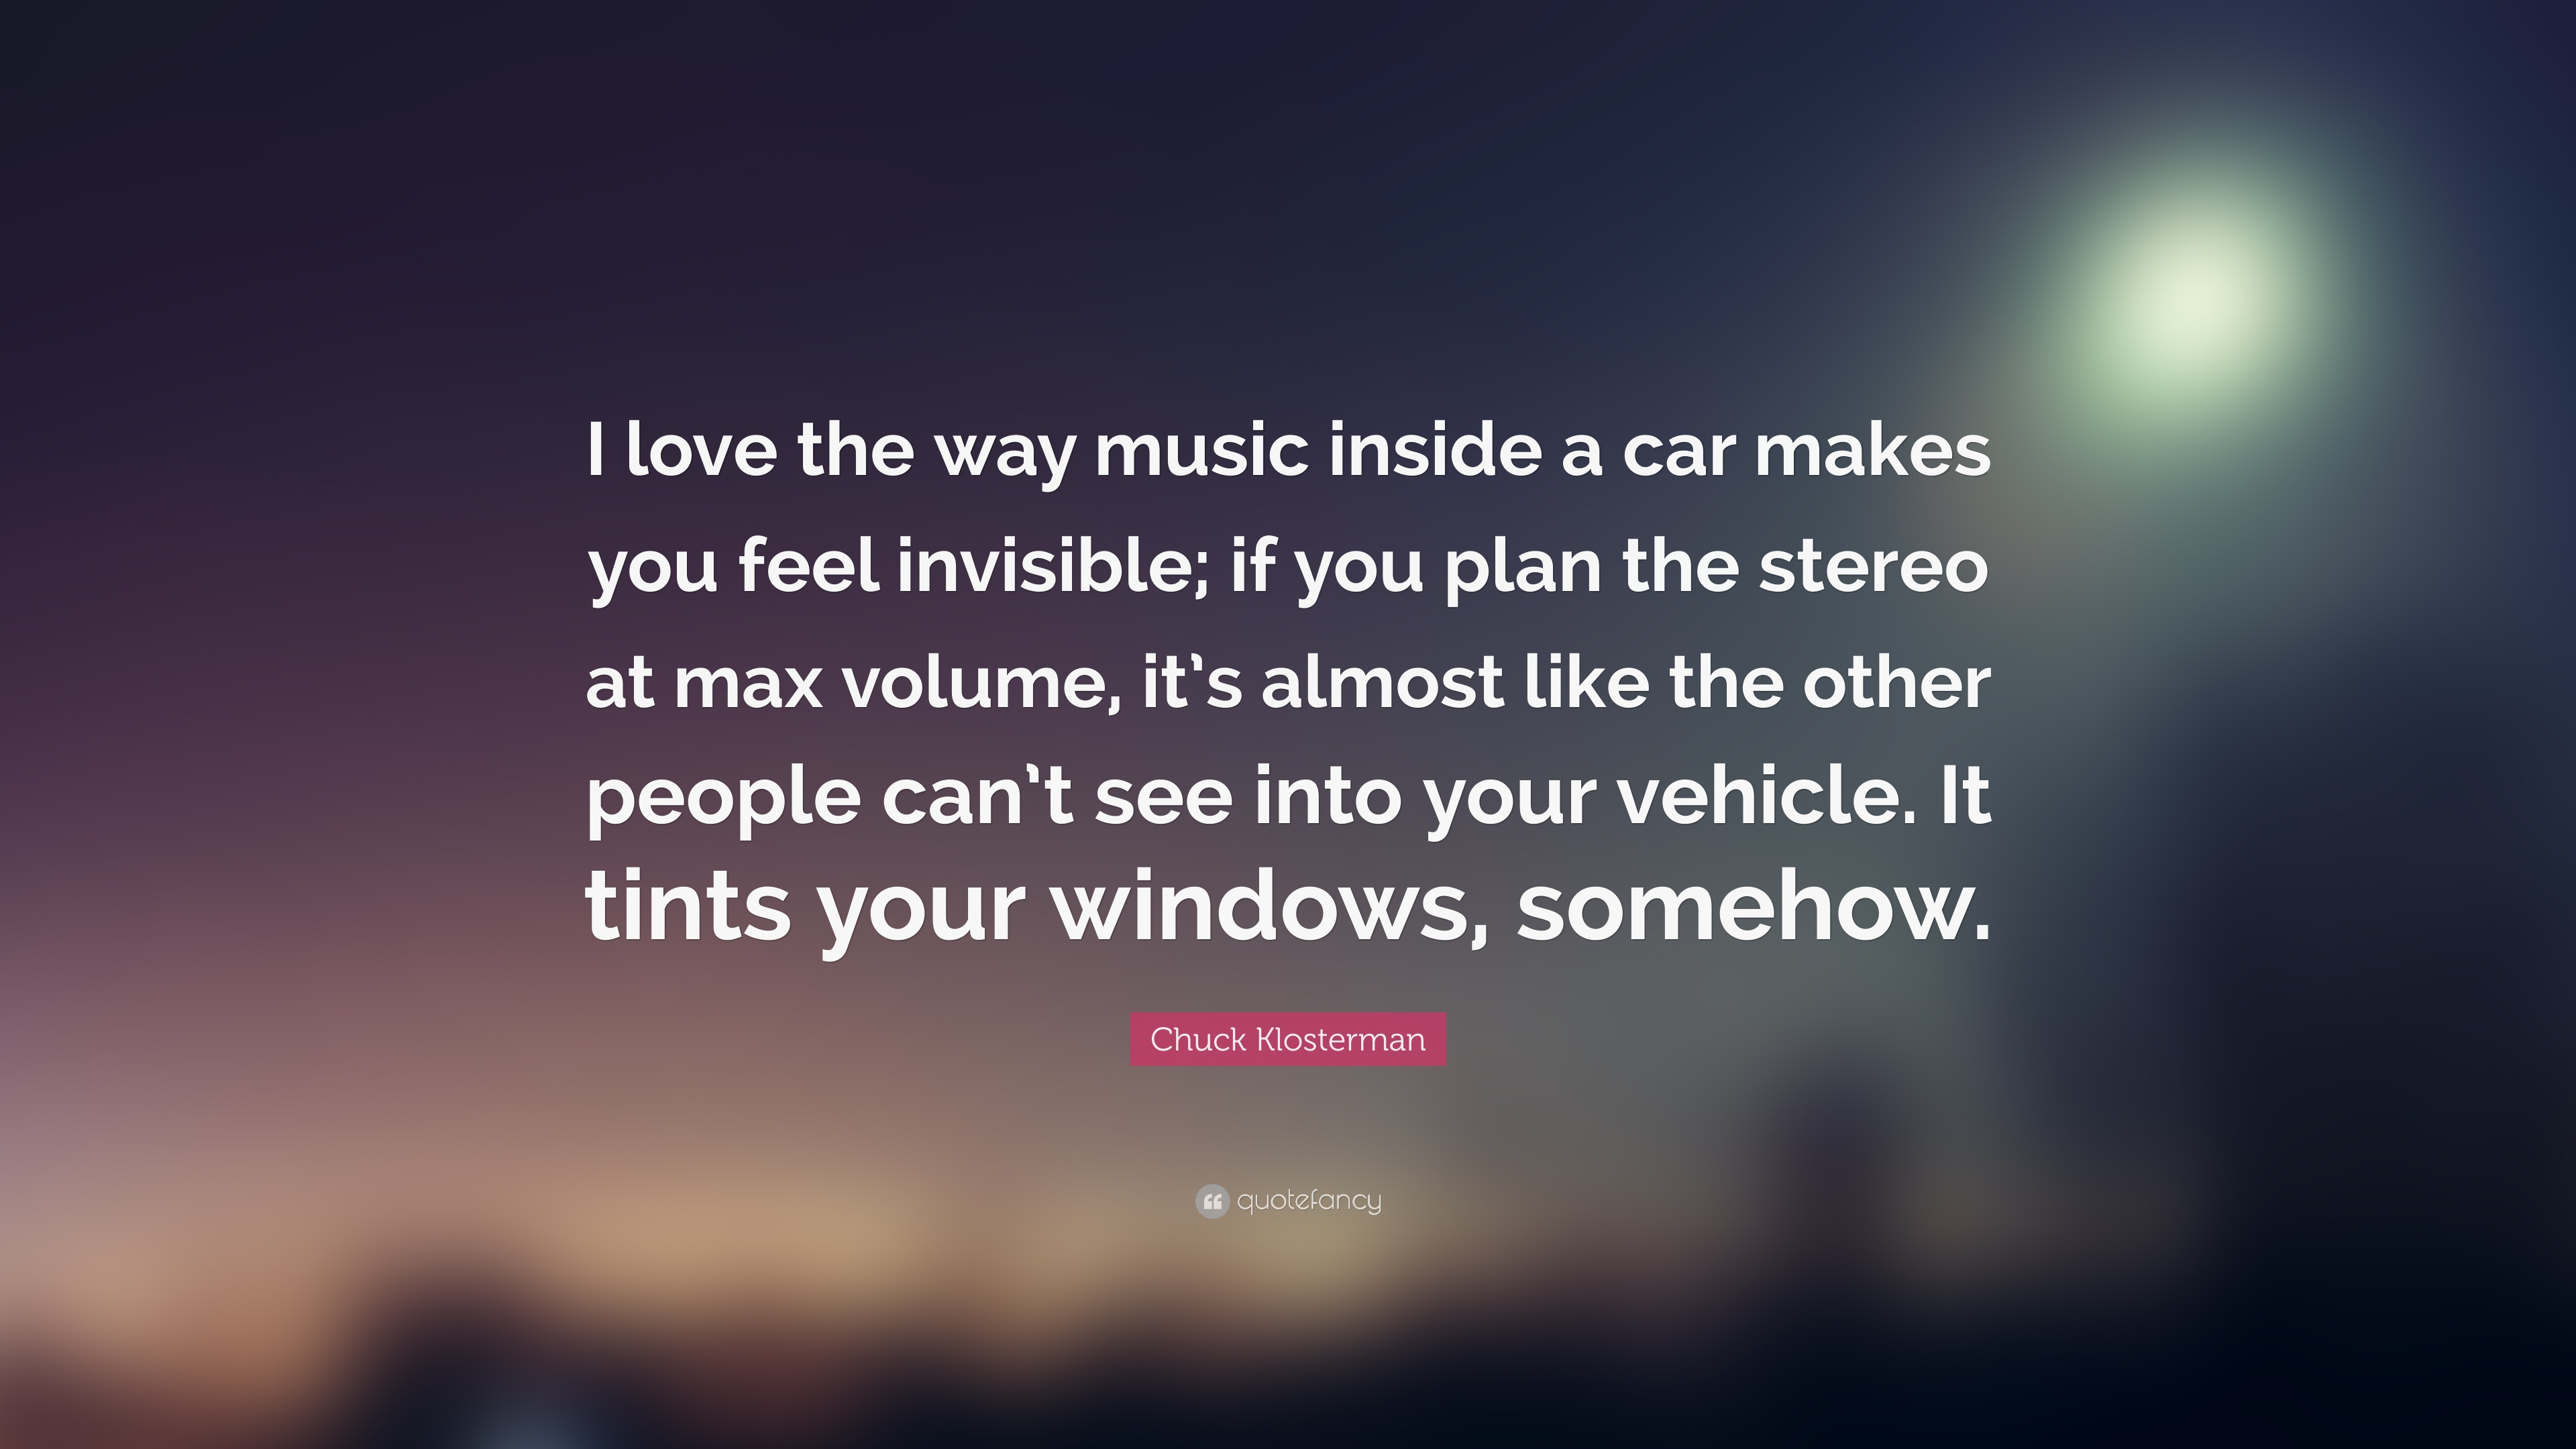 Beautiful Chuck Klosterman Quote: U201cI Love The Way Music Inside A Car Makes You Feel